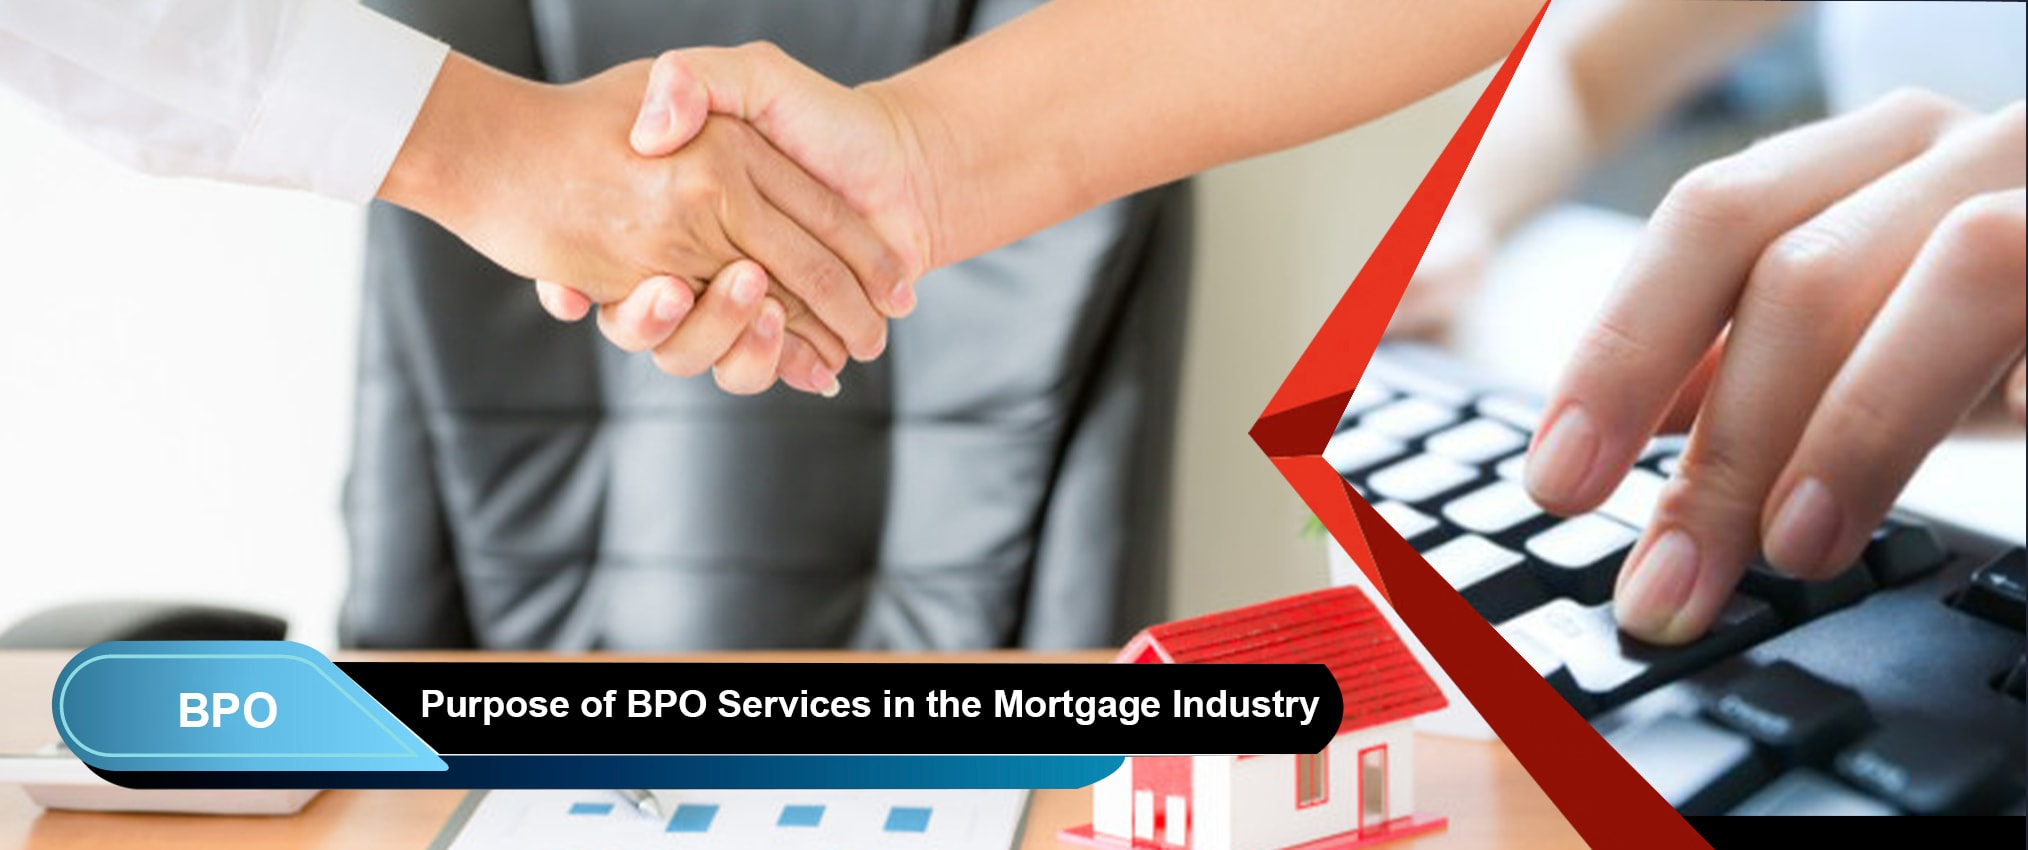 purpose-of-bpo-service-in-the-mortgage-industry